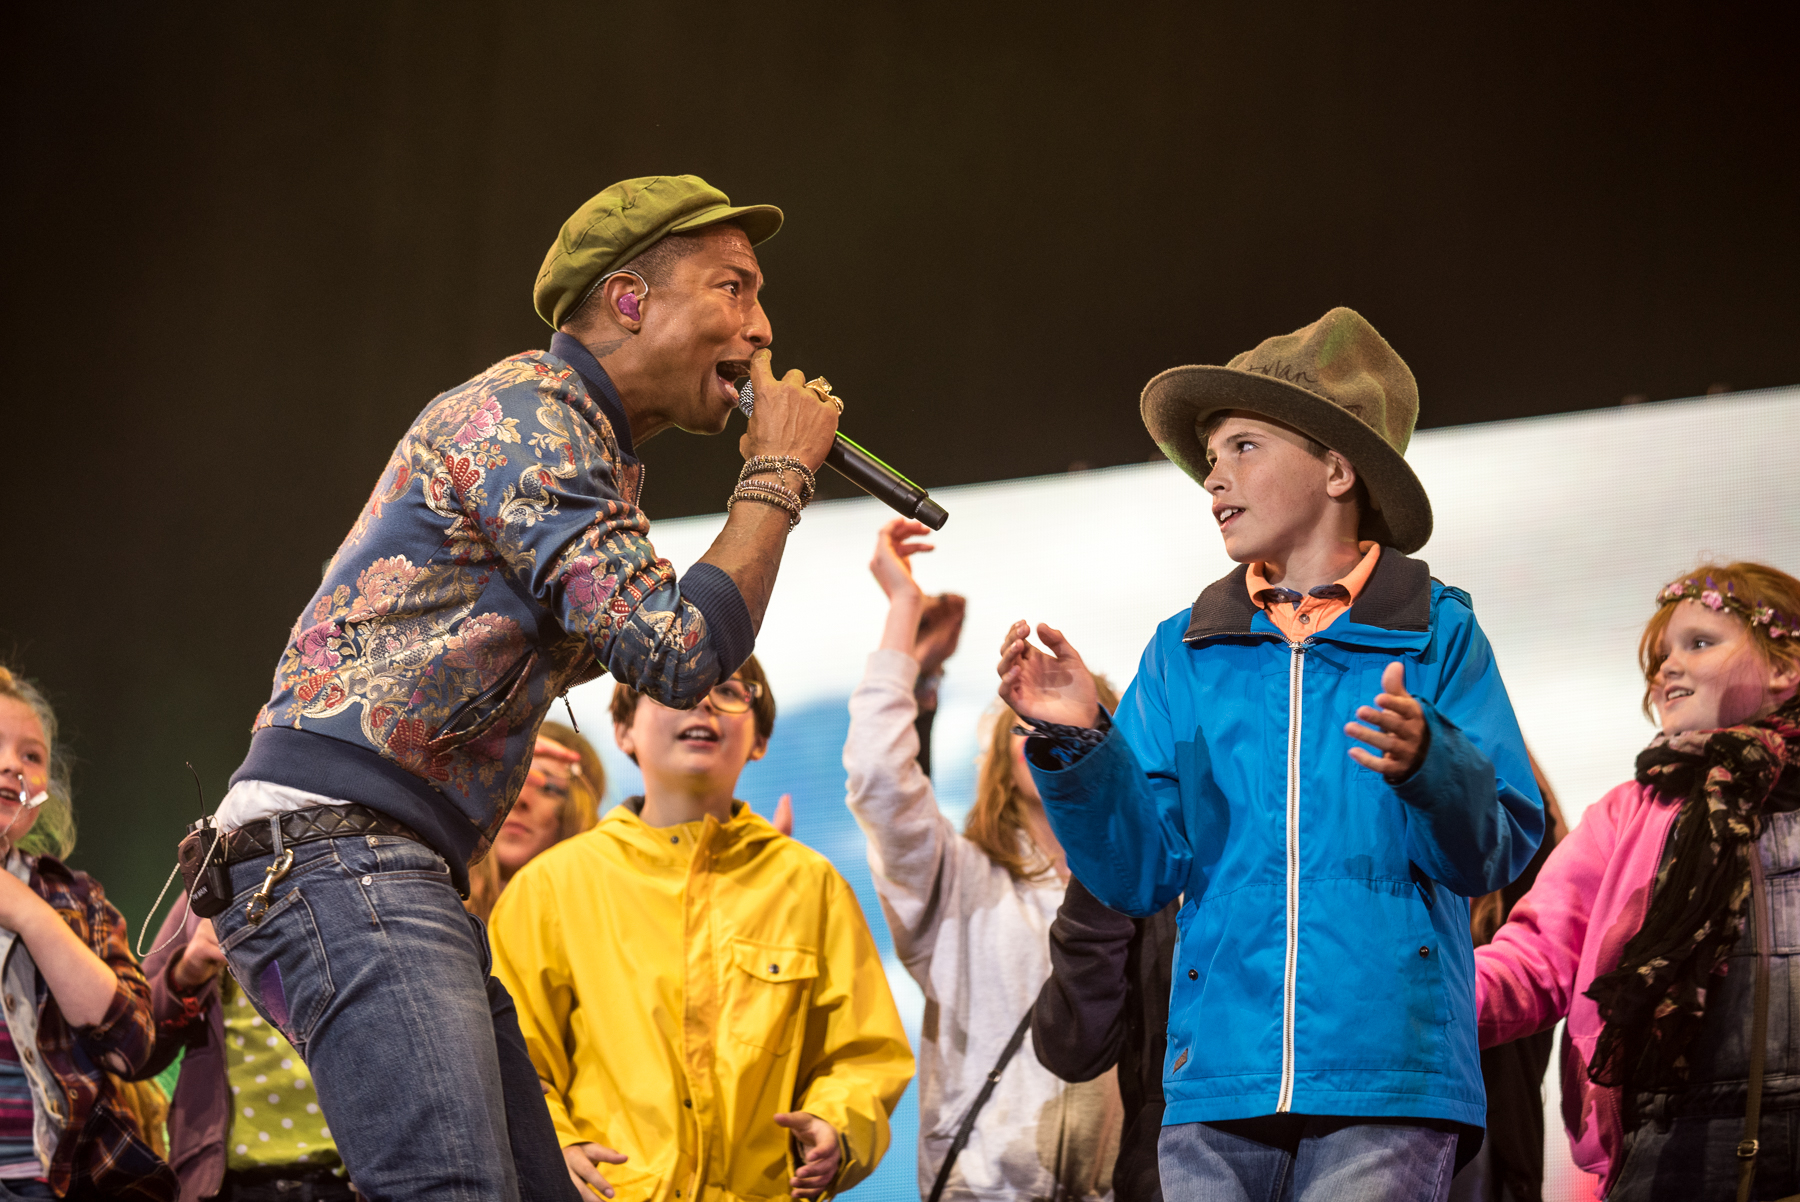 Pharrell Williams, Previous N.E.R.D Frontman, Performing with Dylan to give this kid one hell of a treat! #WellChild